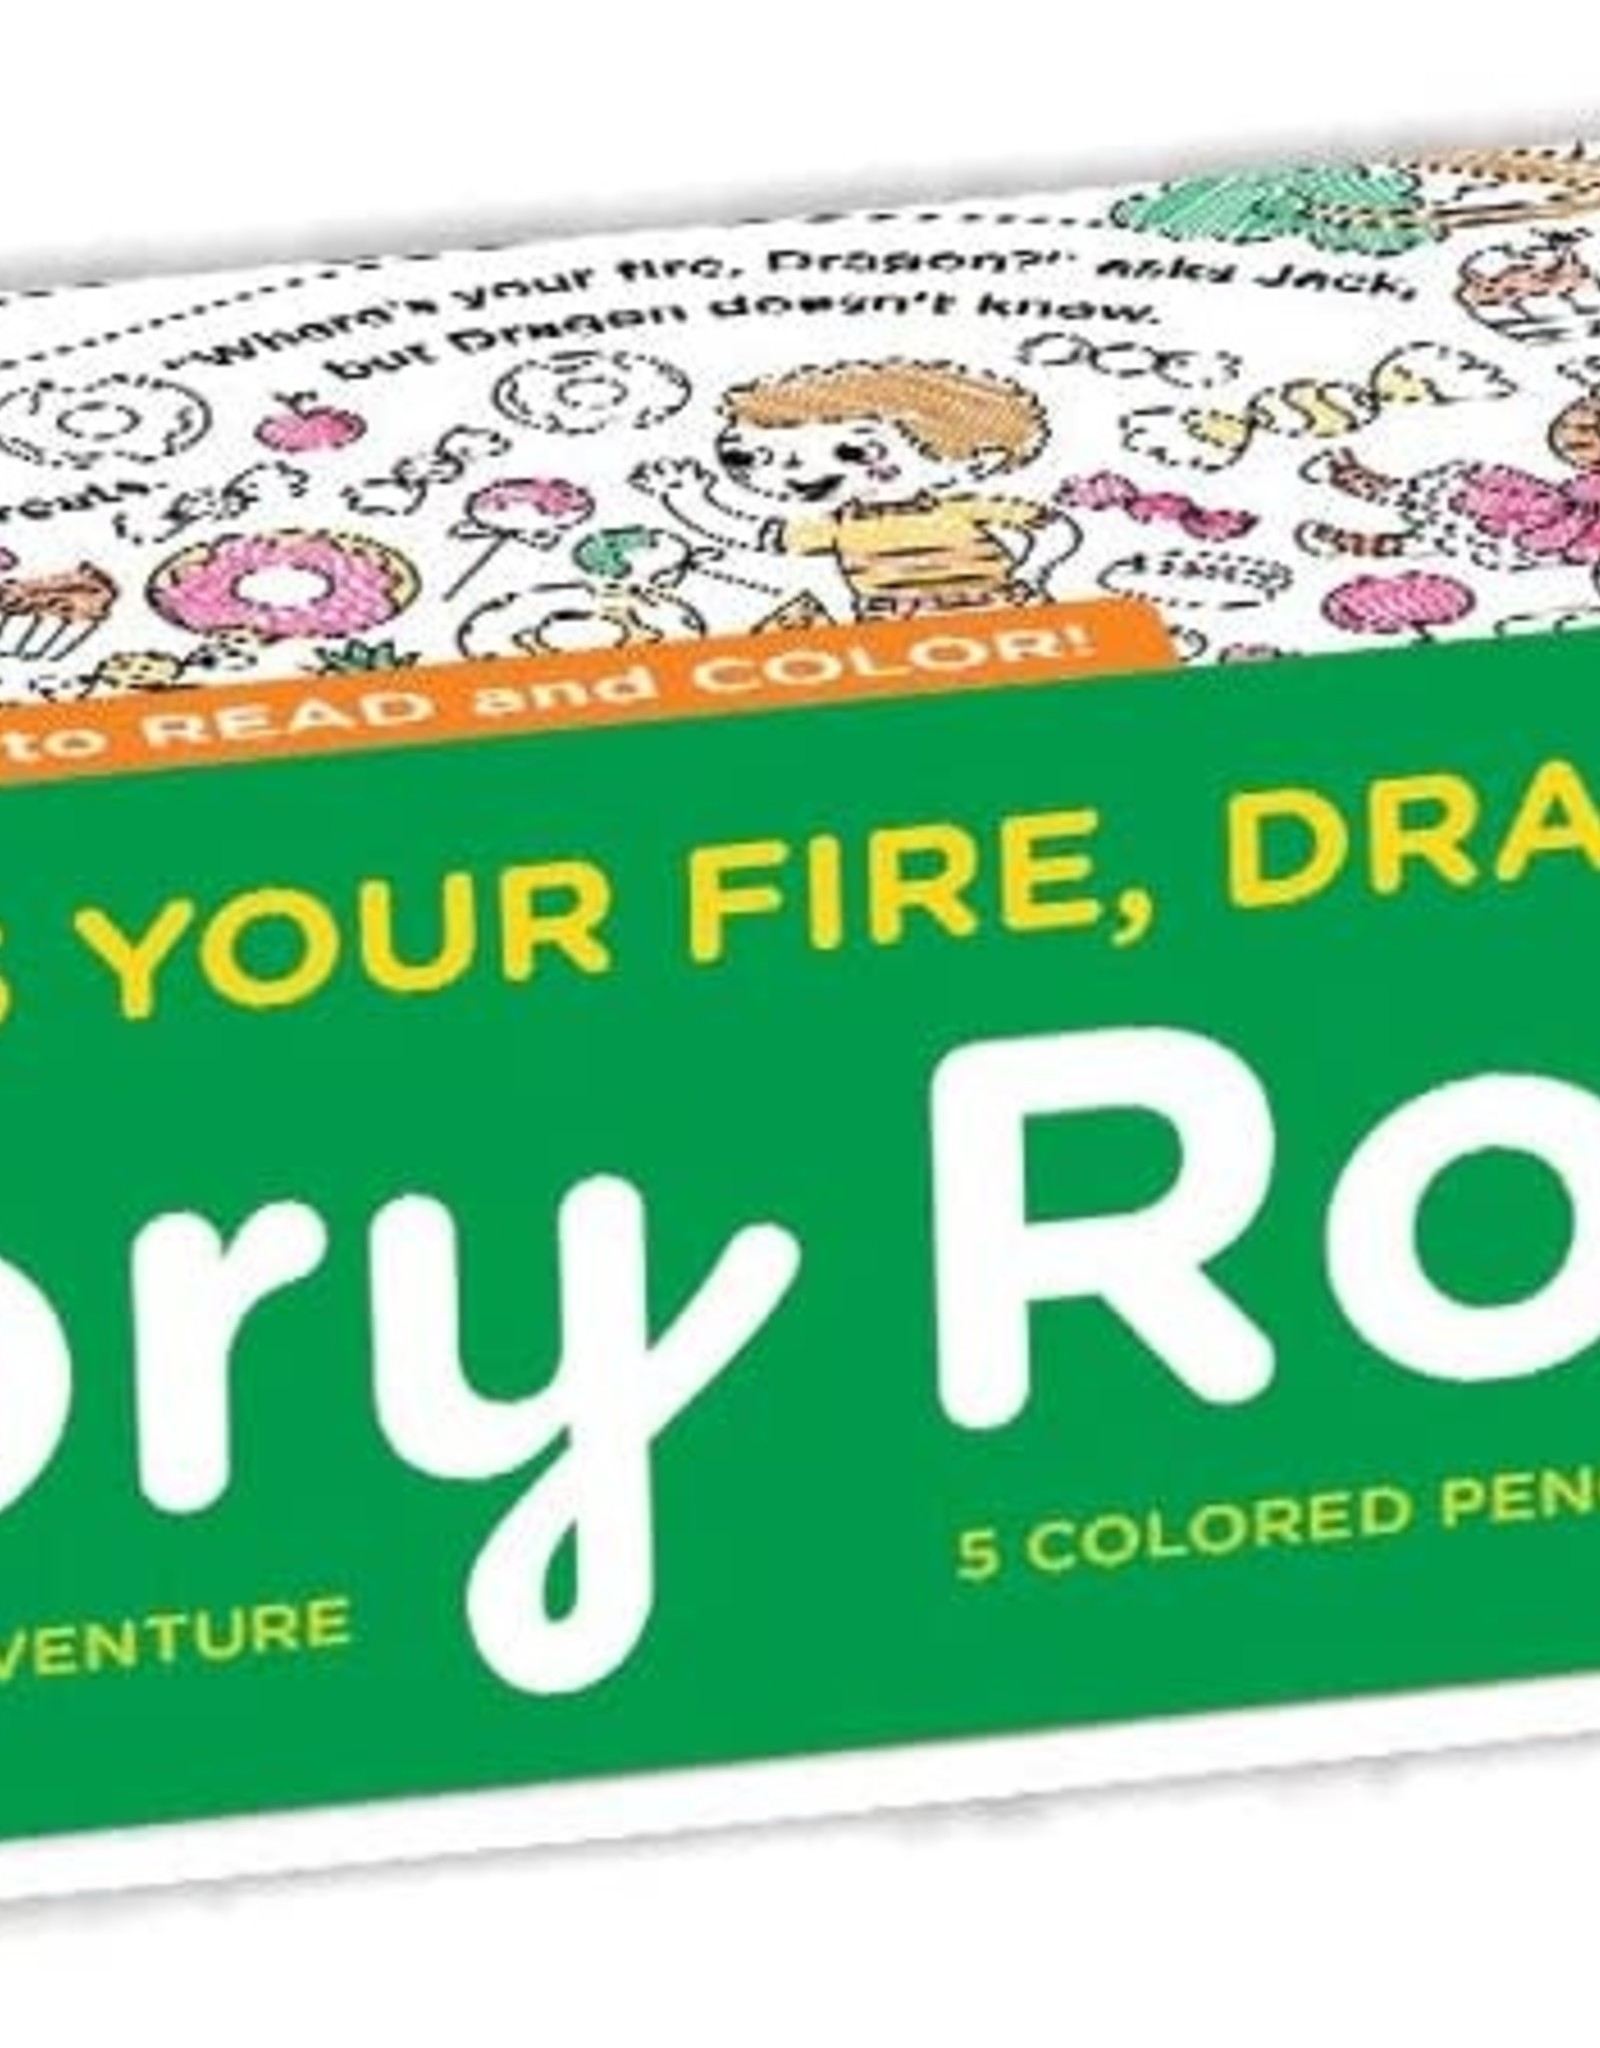 Mudpuppy Story Roll - Where's Your Fire, Dragon?